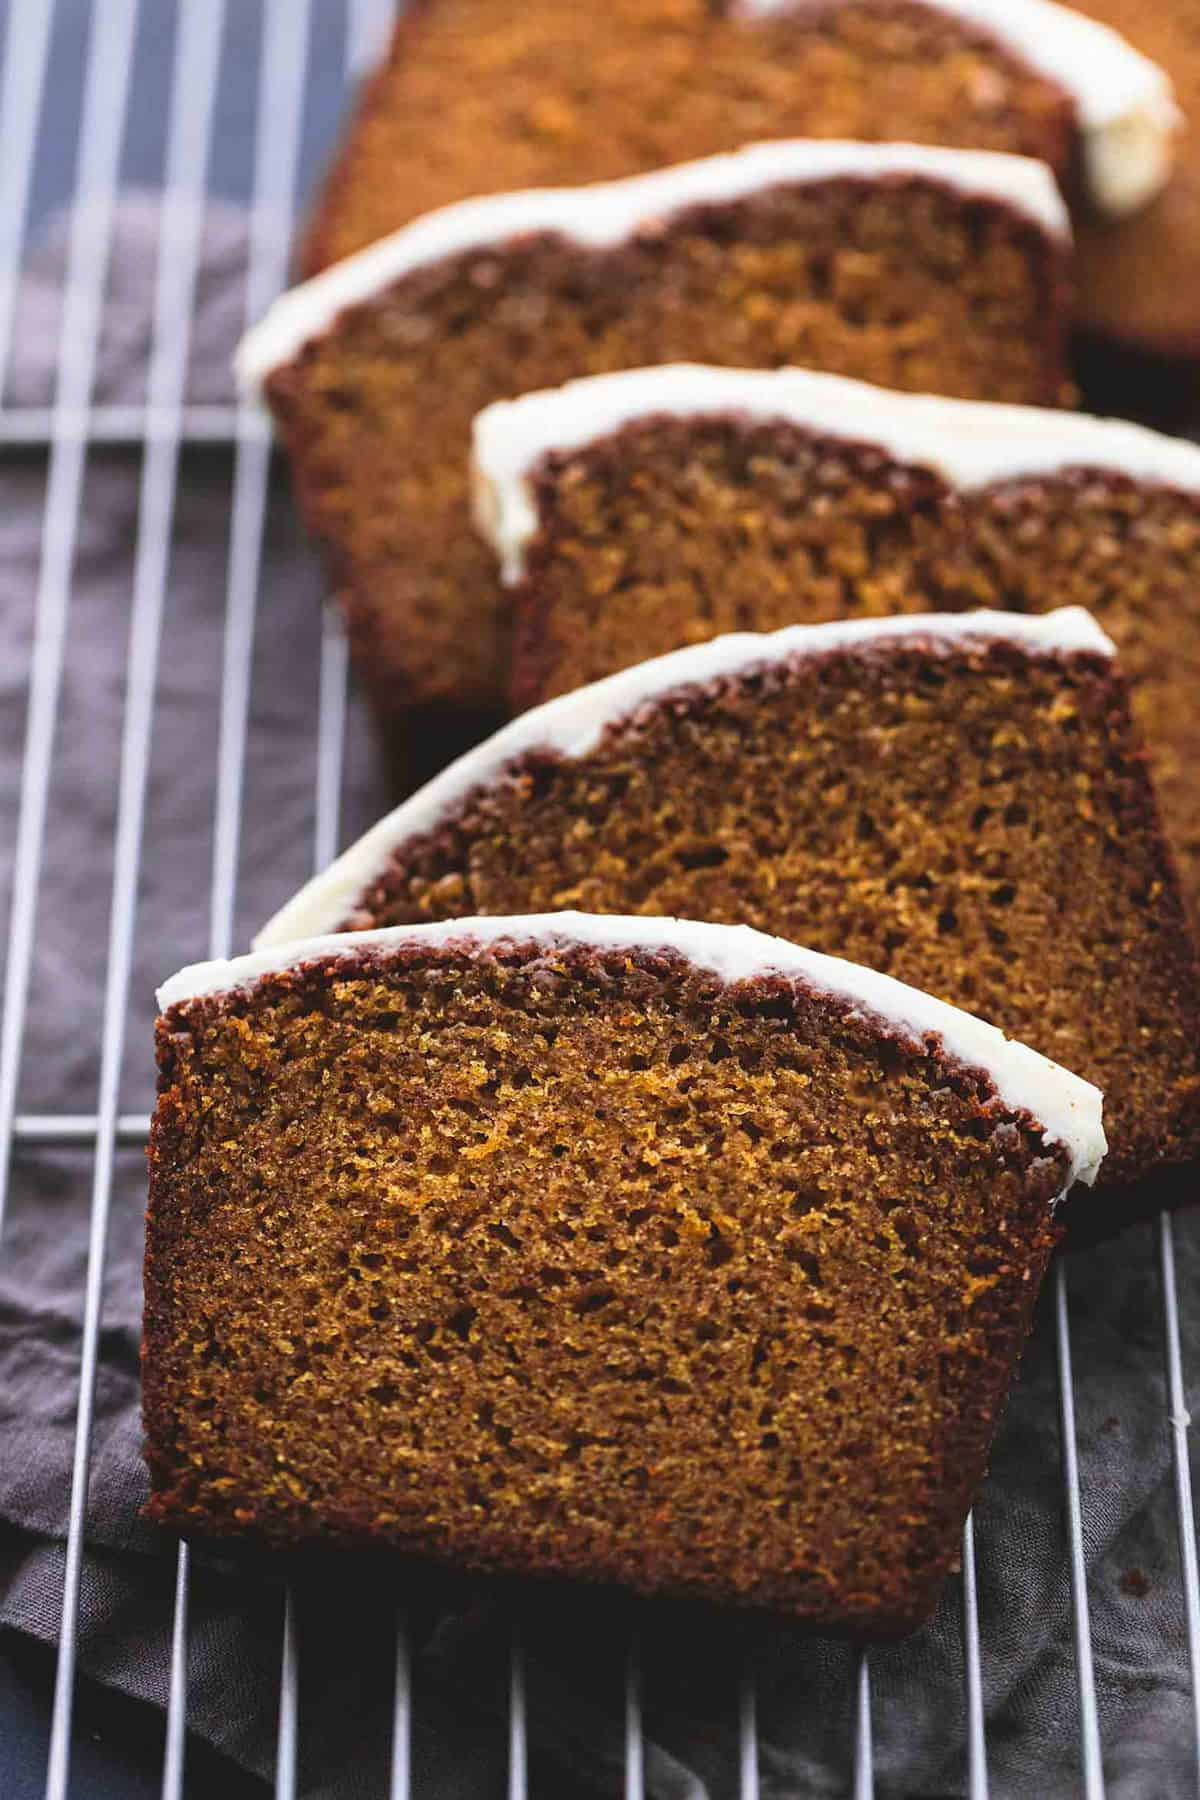 cream cheese frosted pumpkin bread slices on a cooling rack.